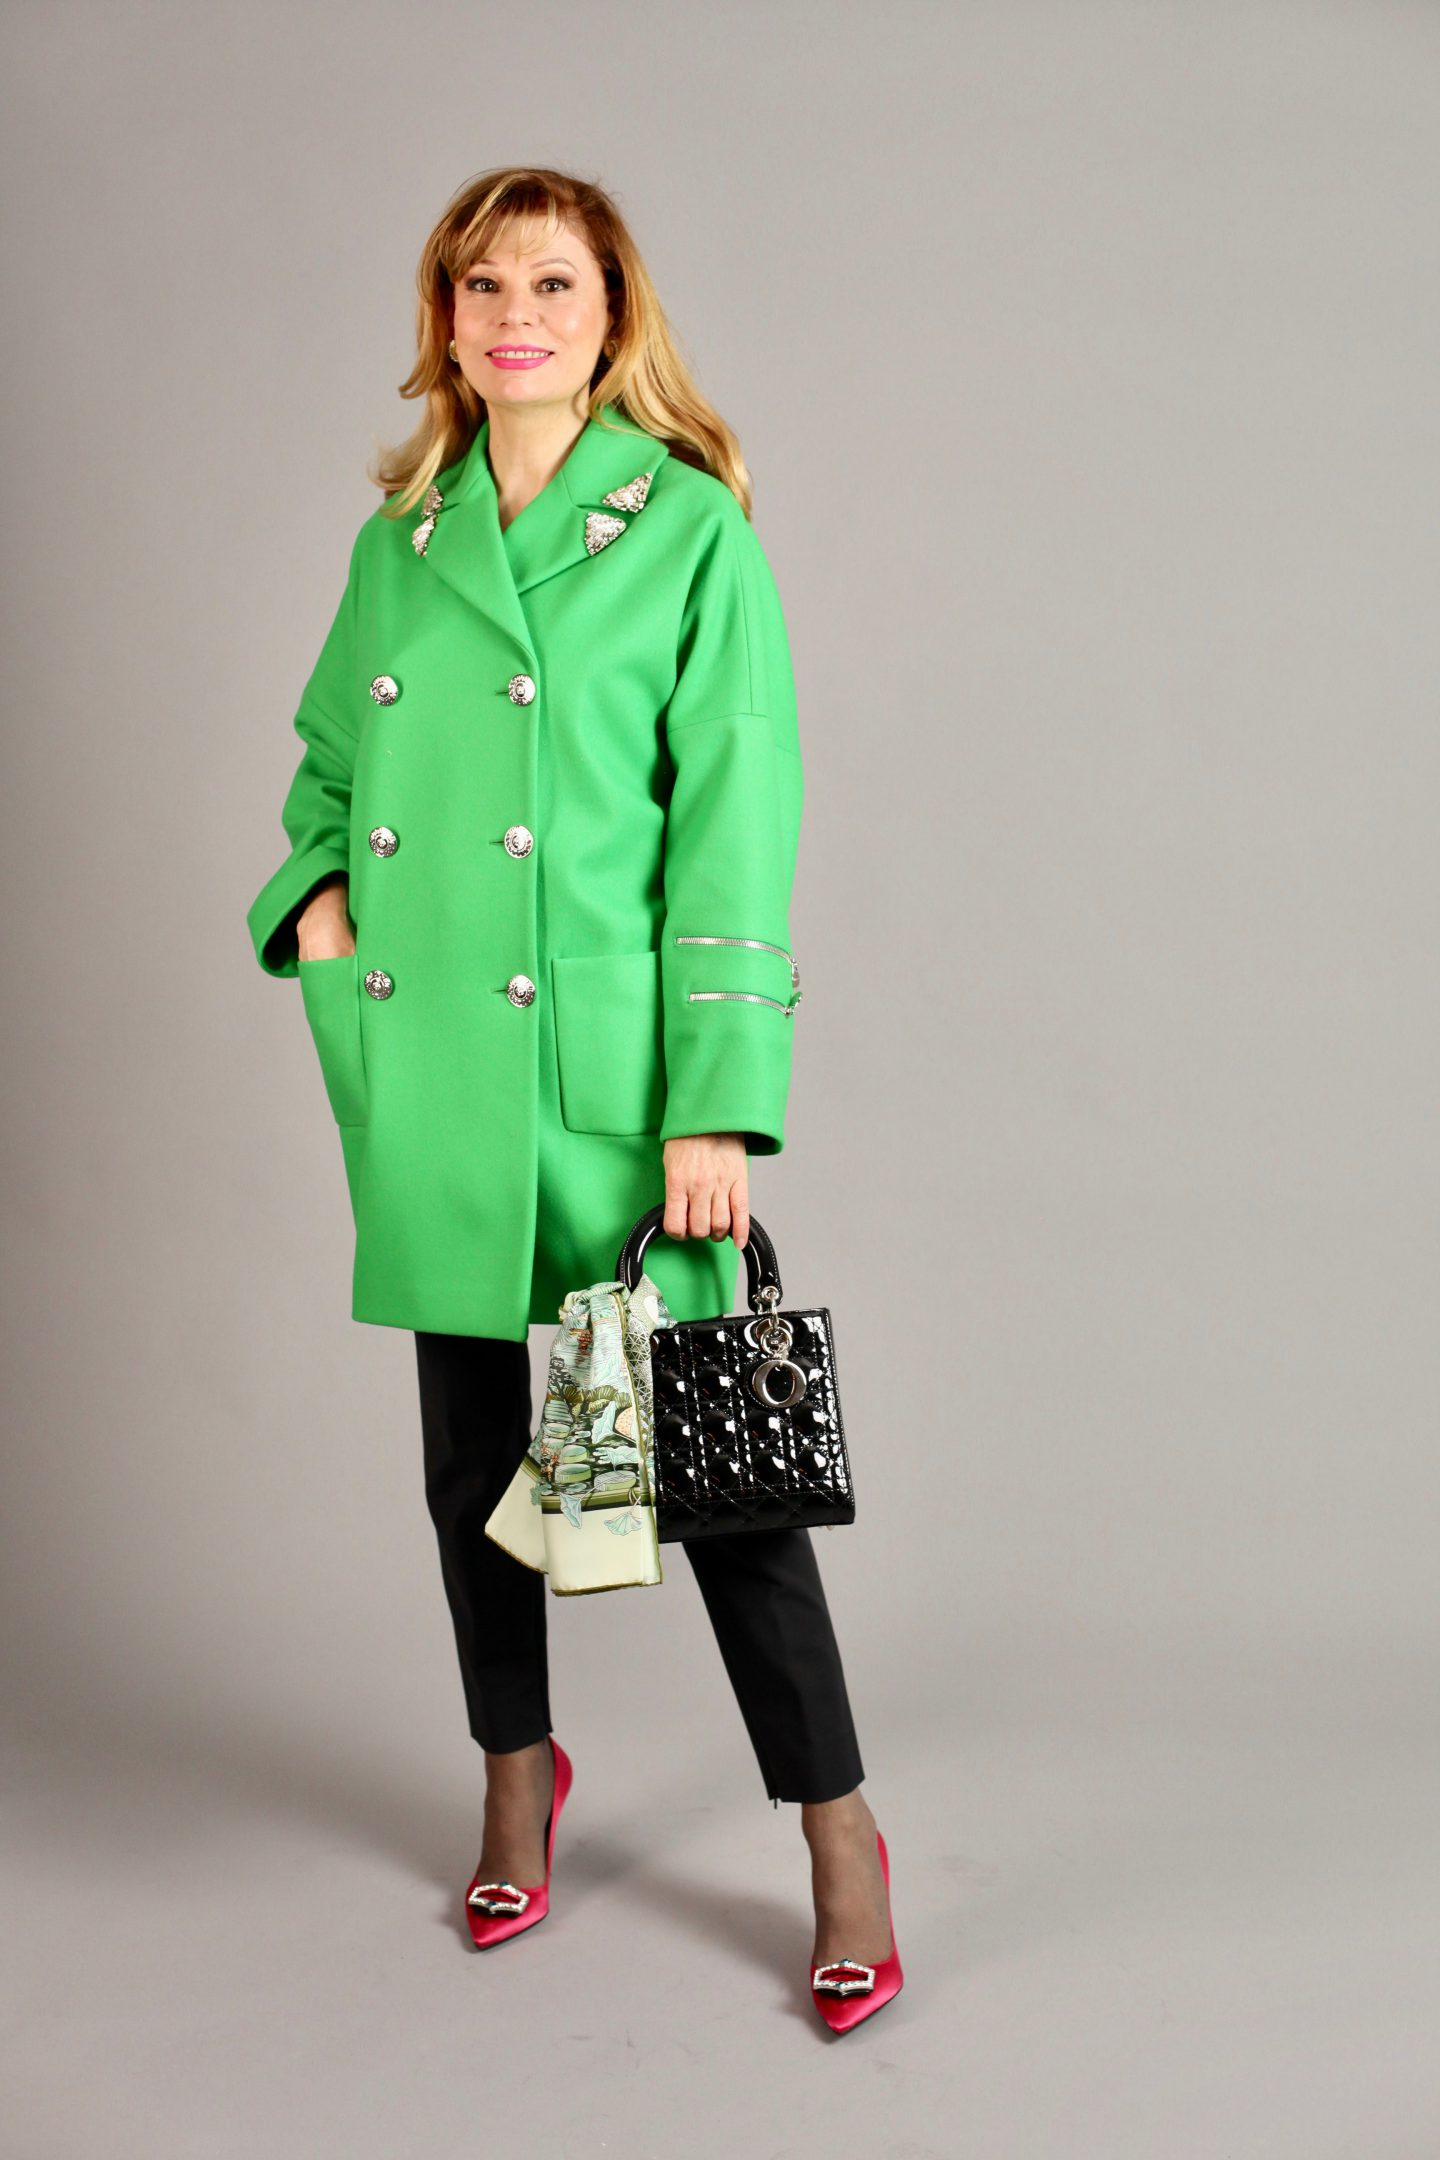 THE ABSOLUTELY FABULOUS GREEN FROCK COAT